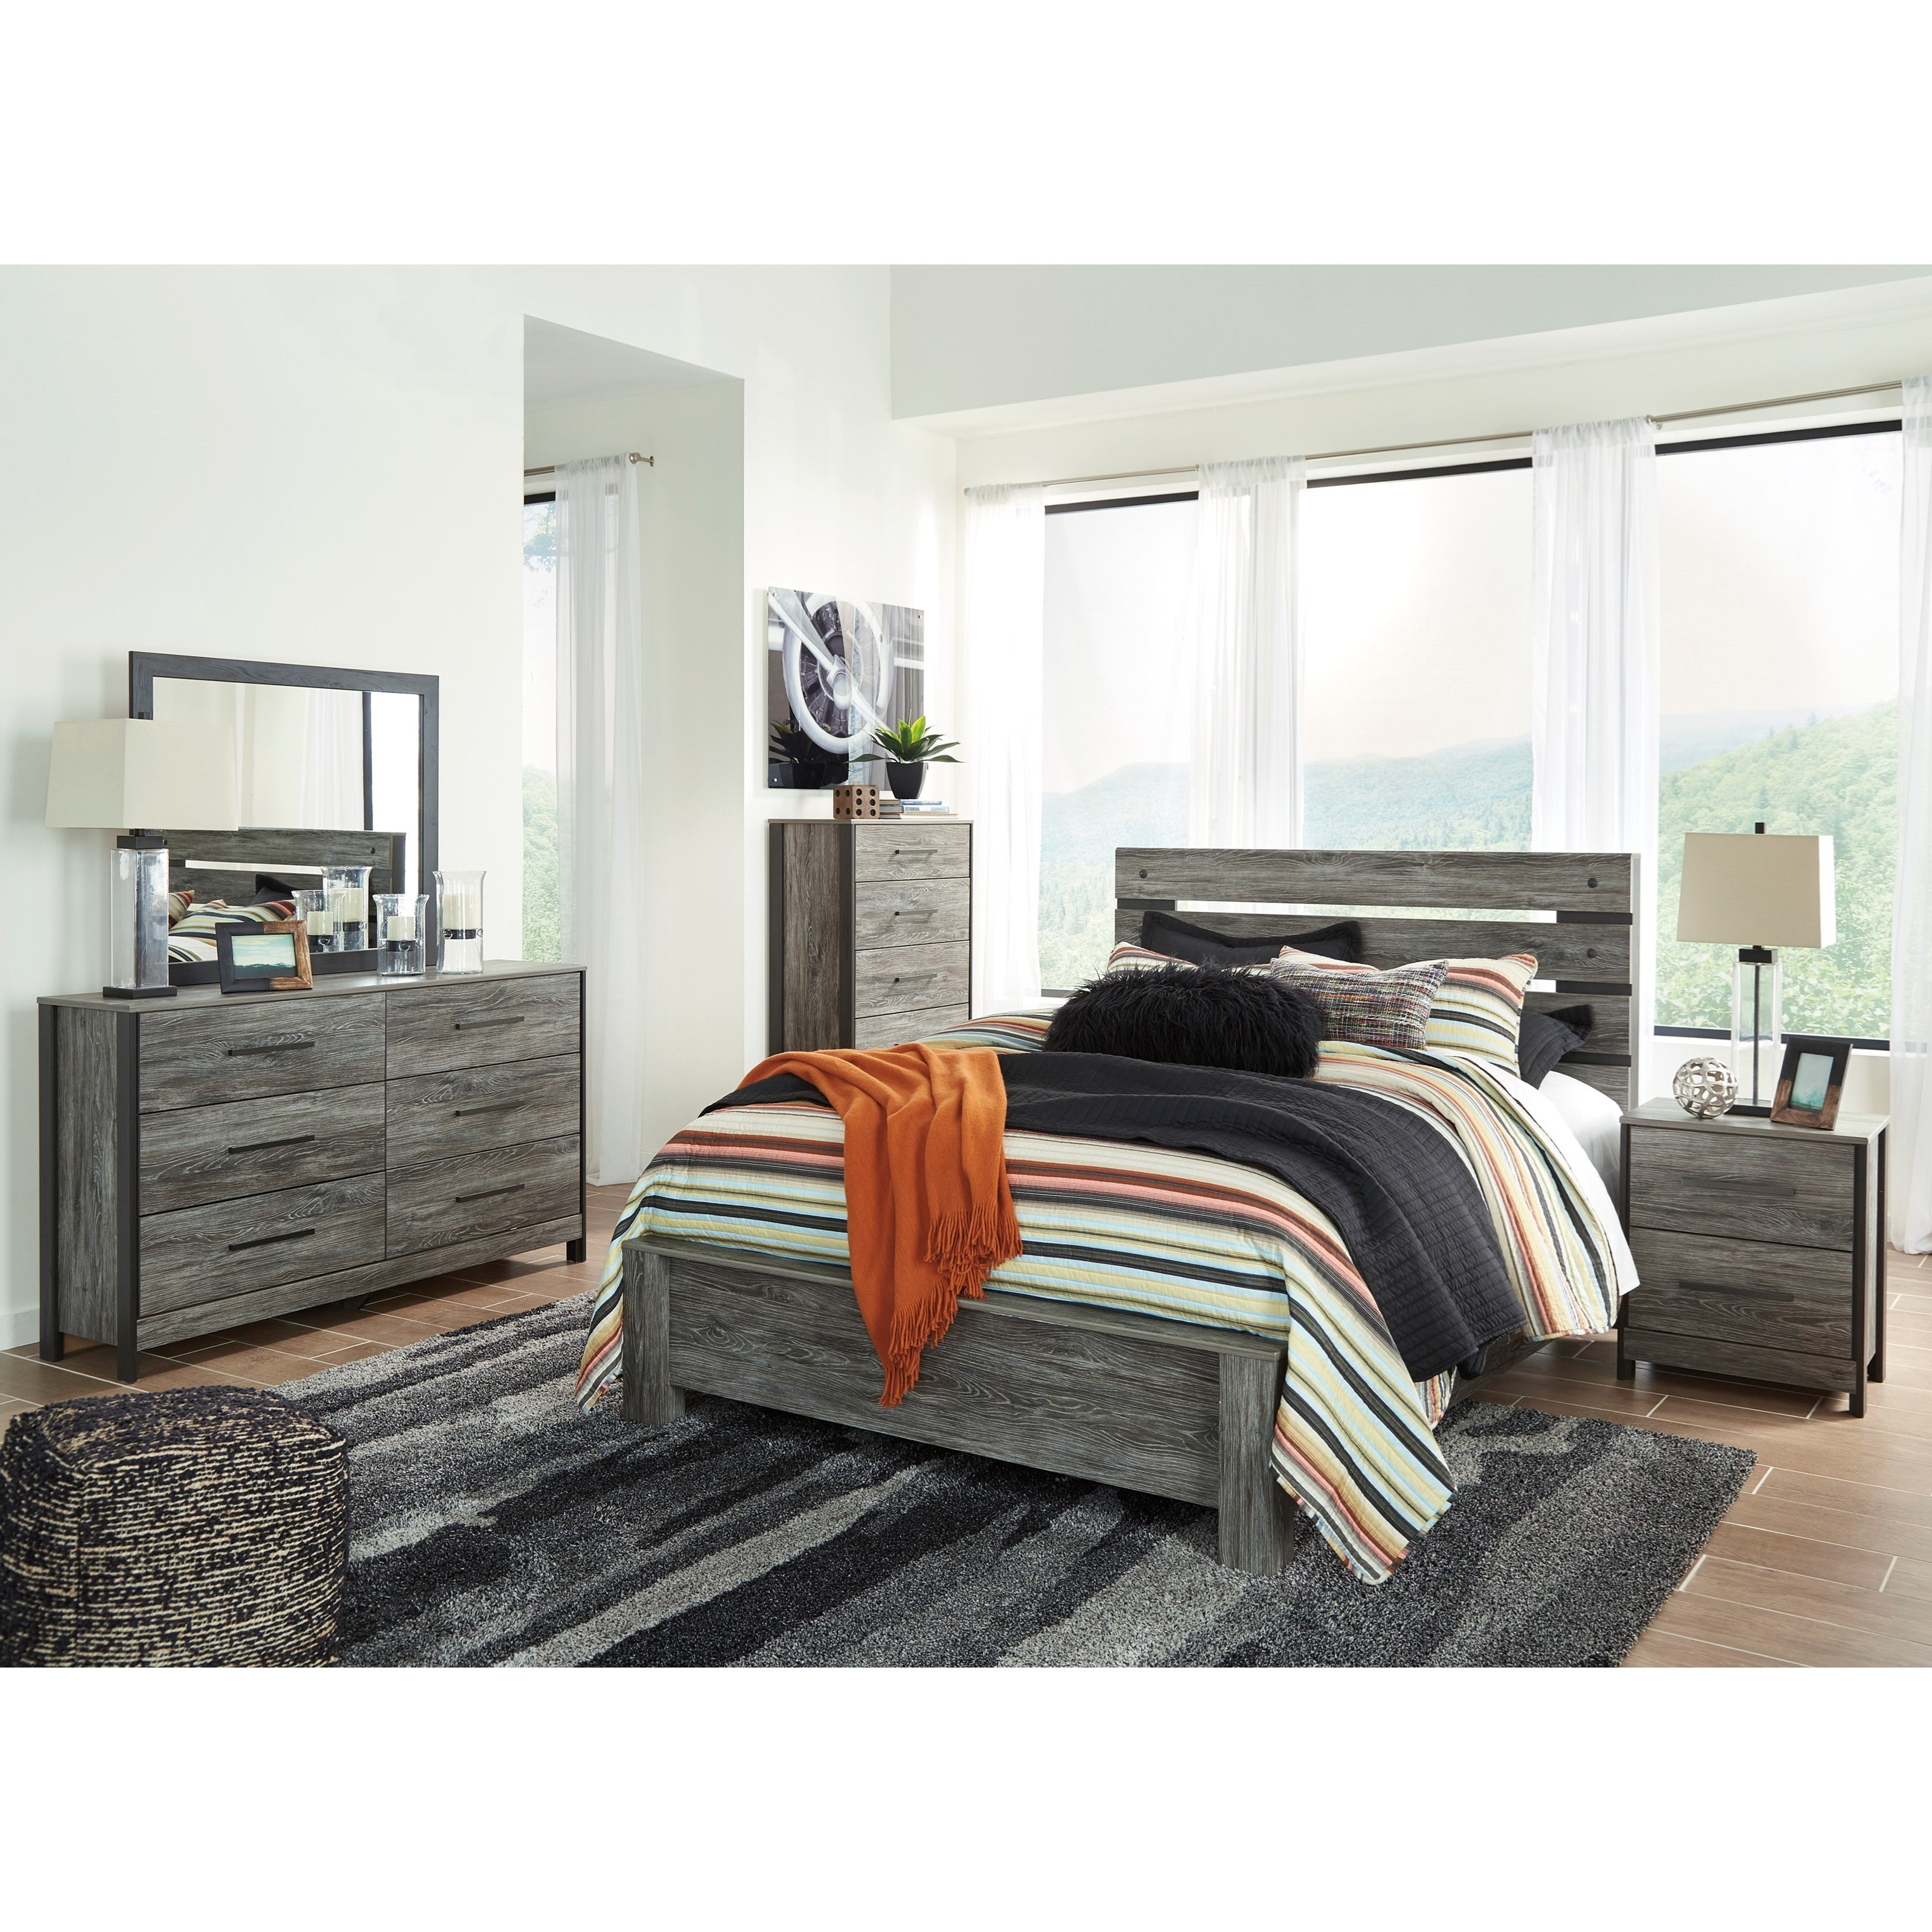 Signature design by ashley cazenfeld queen bedroom group for Bedroom furniture groups